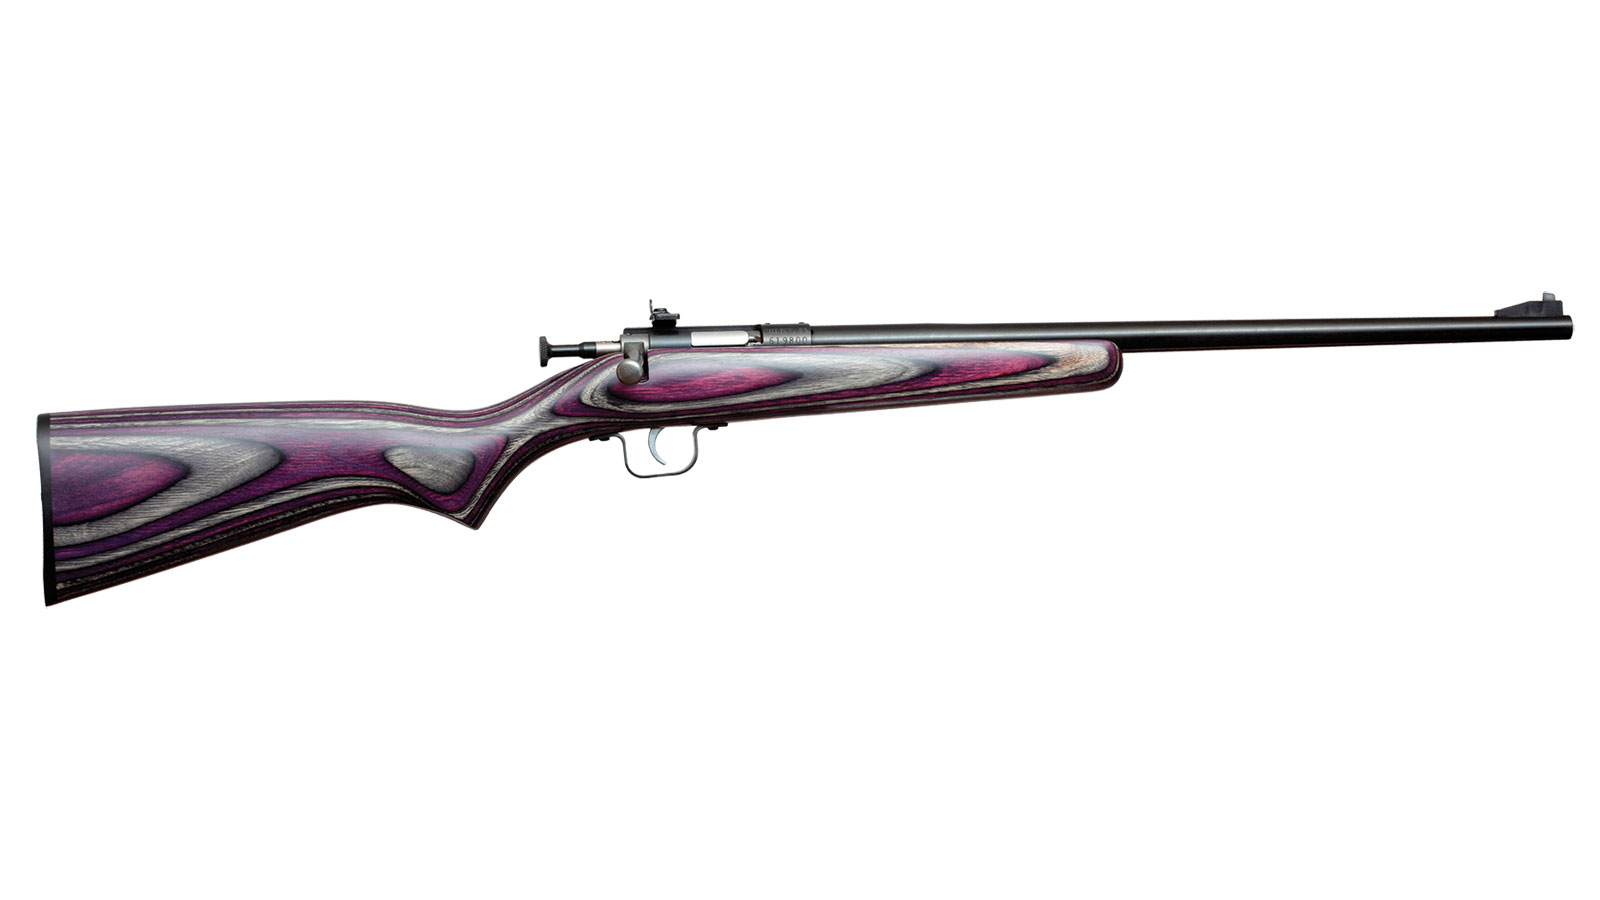 Crickett KSA2227 Single Shot Bolt 22 Long Rifle (LR) 16.12 1 Laminate Purple Stk Blued in.